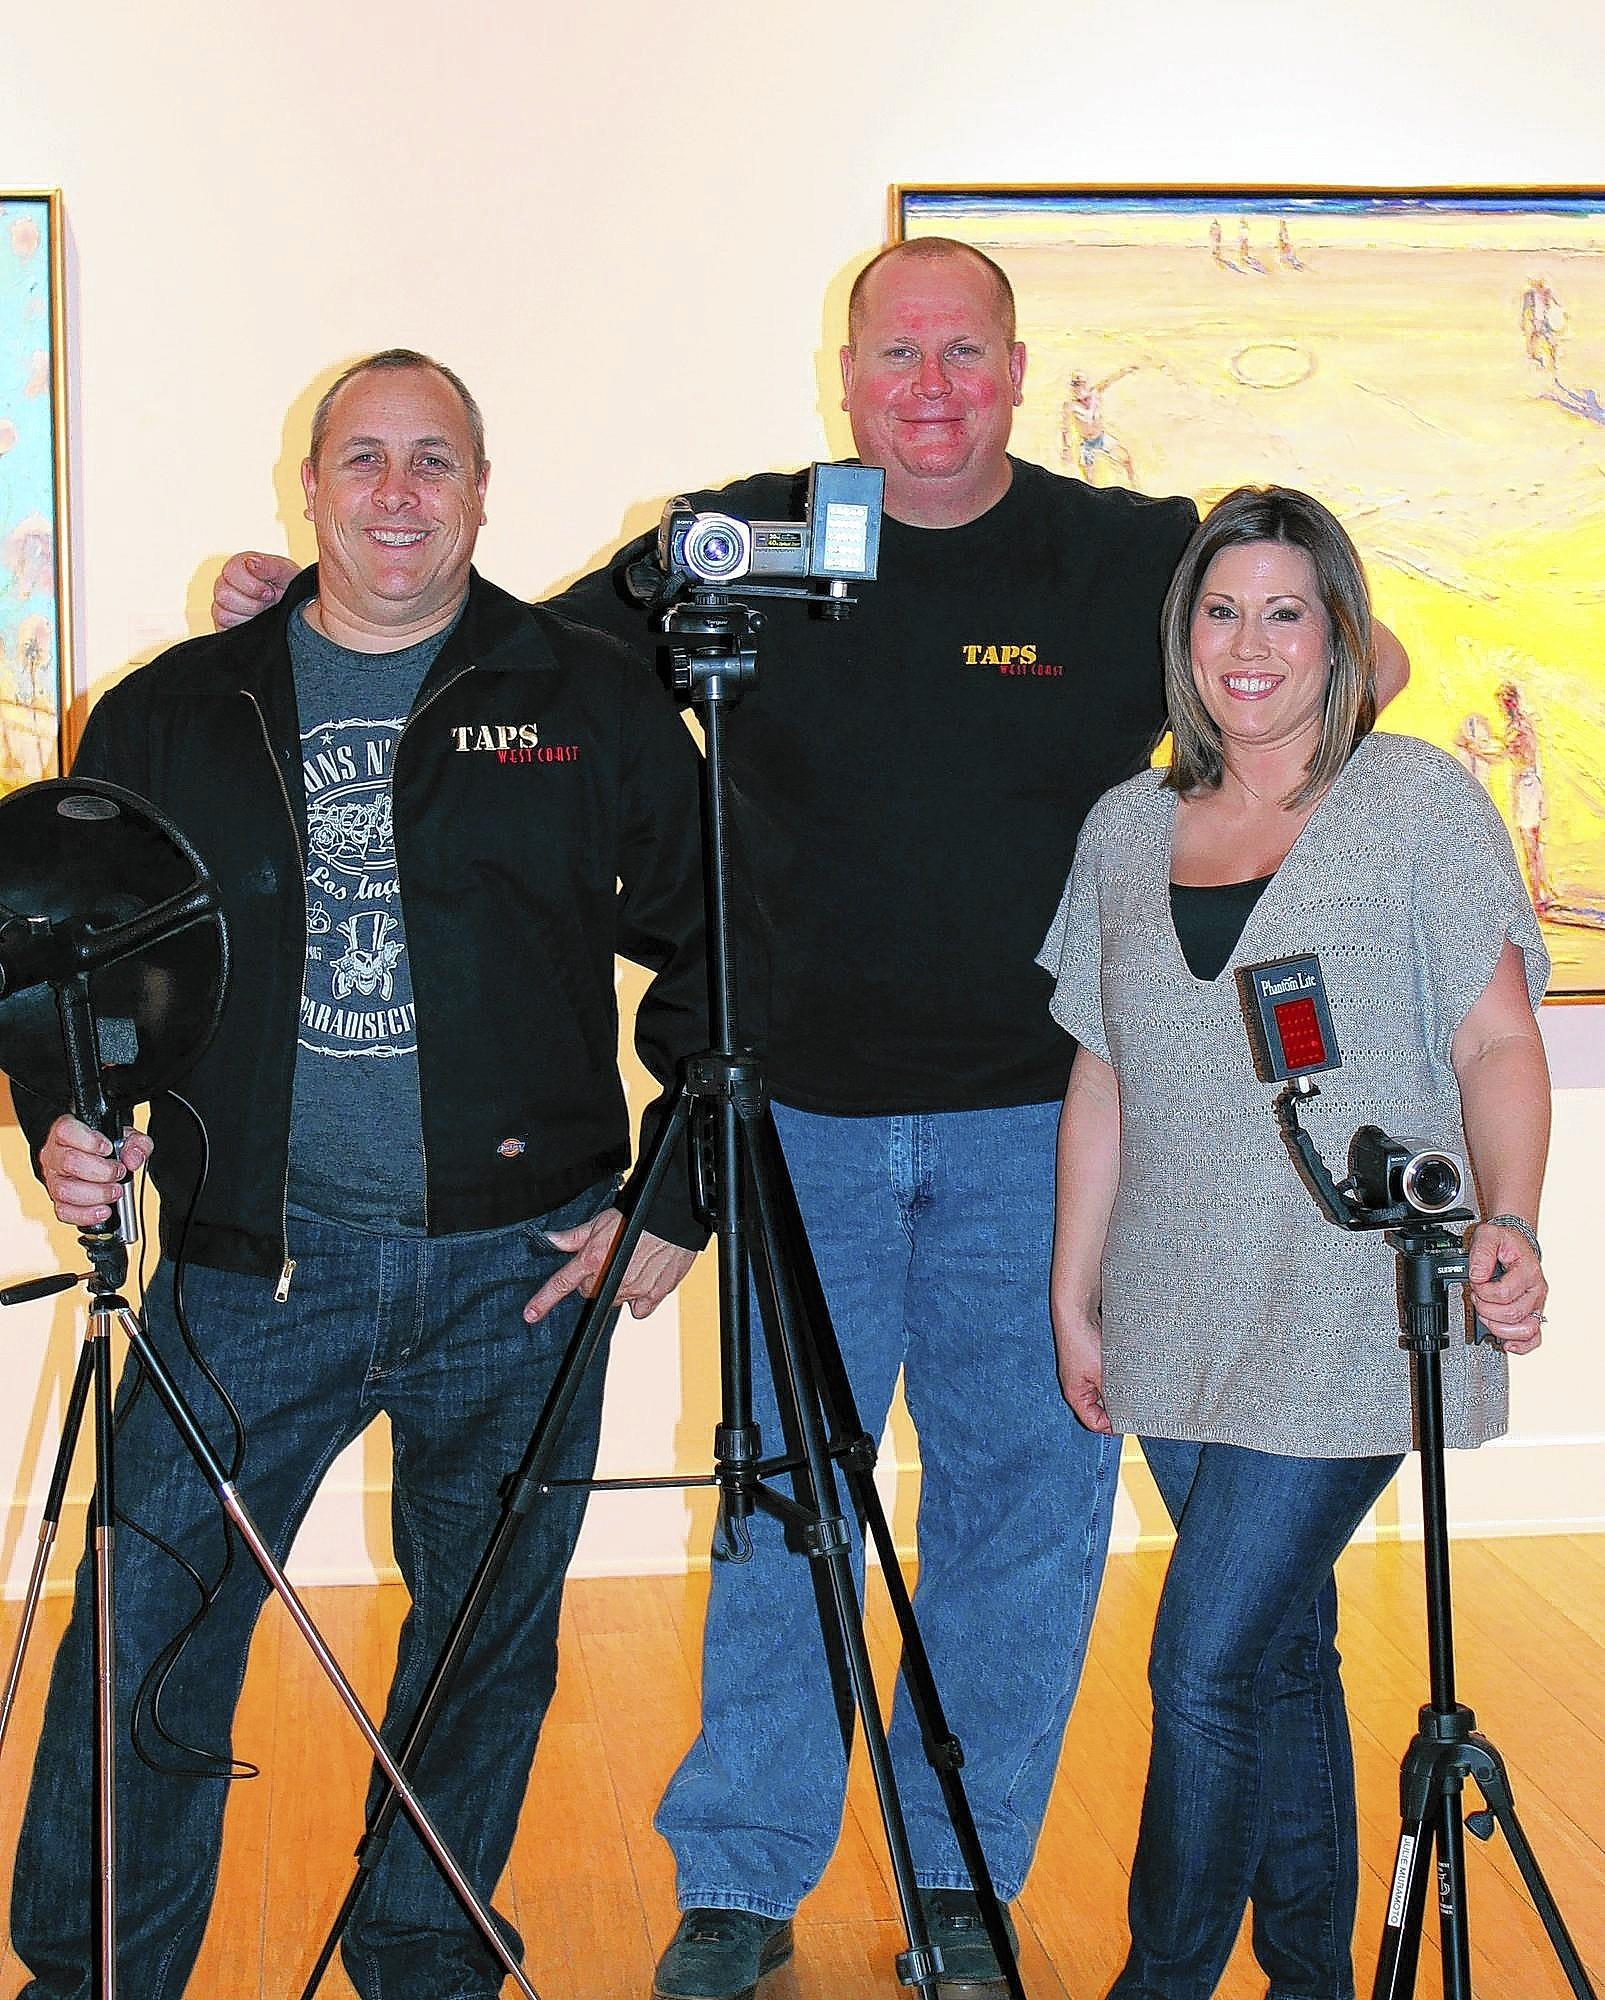 From left, Christopher Turner, Chad Weber and Julie Muramoto, members of The Atlantic Paranormal Society (TAPS) West Coast, pose for a portrait at the Laguna Art Museum on Saturday.